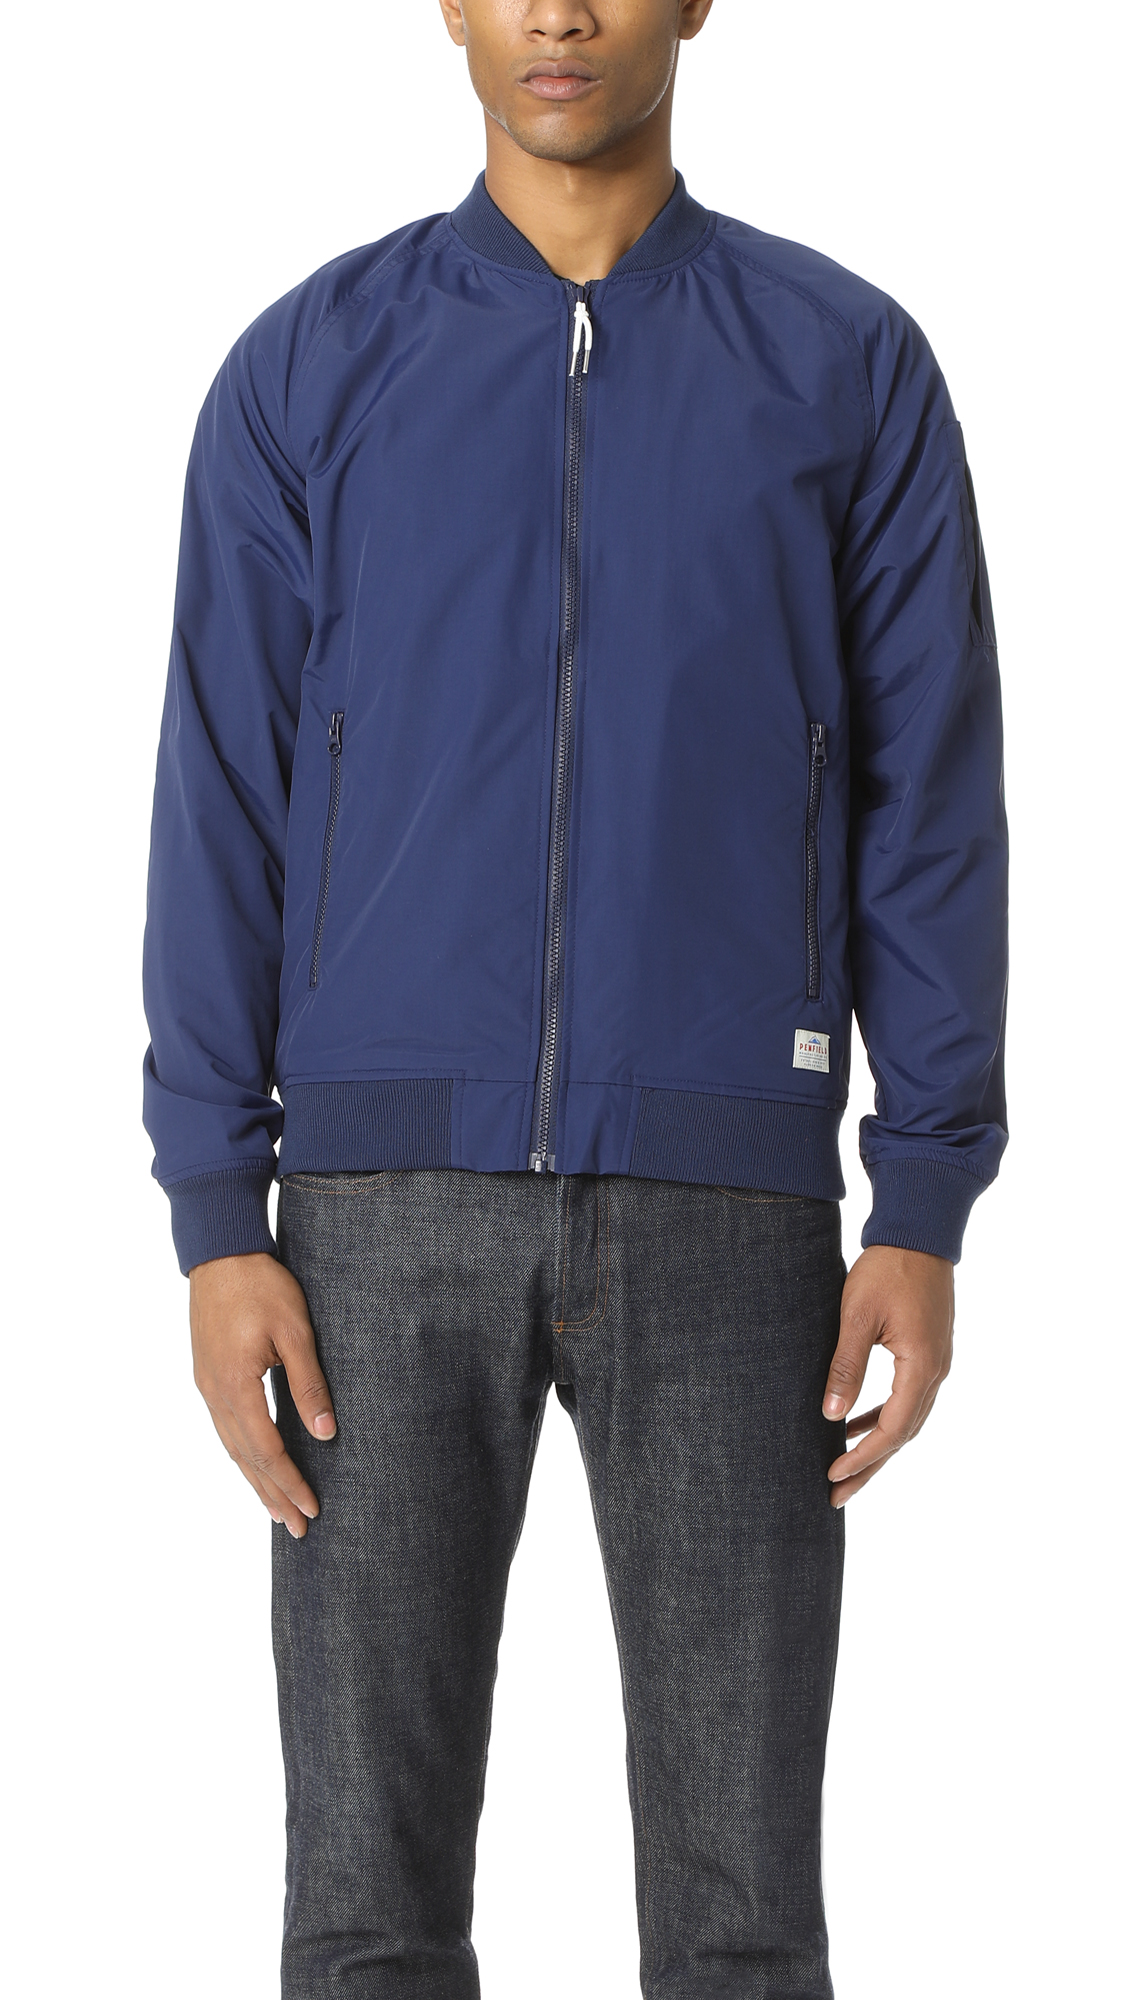 e8b1e20f1 Penfield Okenfield Jacket | EAST DANE